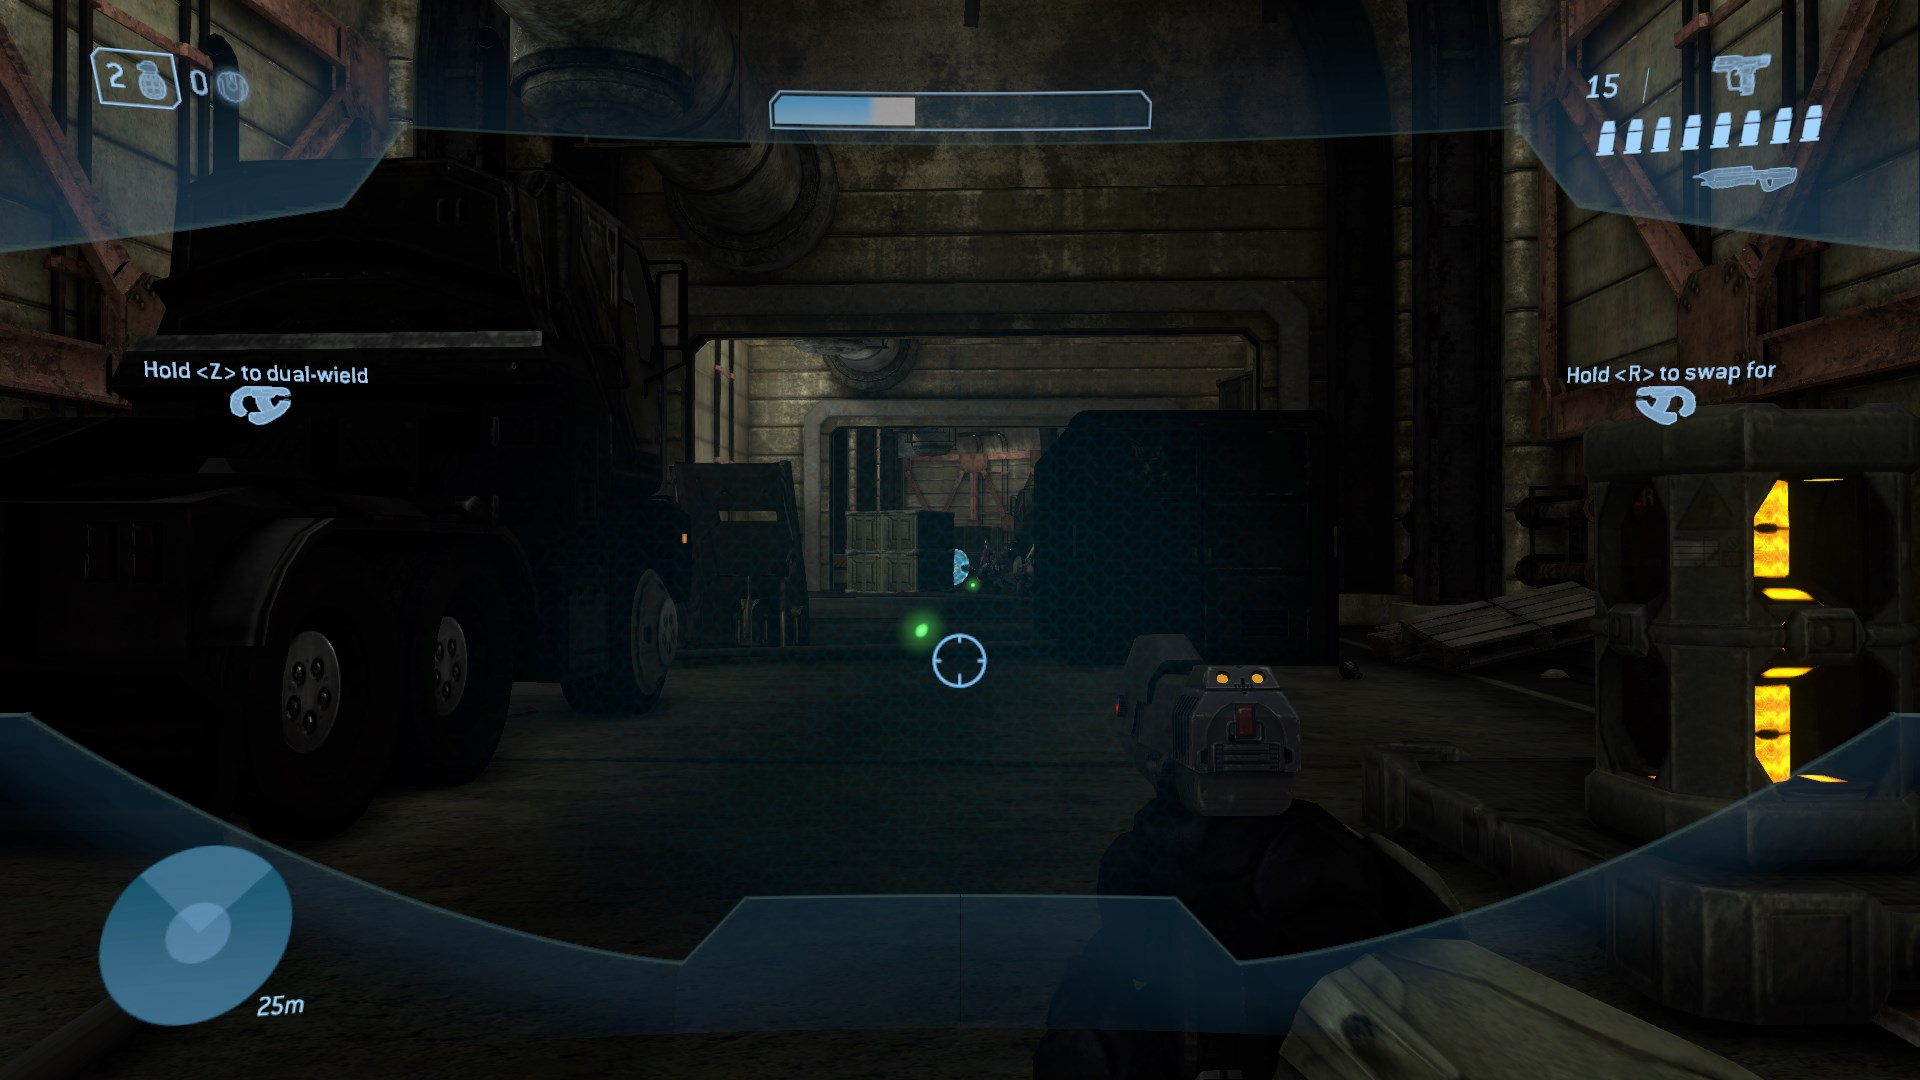 UPDATE] - A secret fan-made Halo 3 PC port allegedly exists